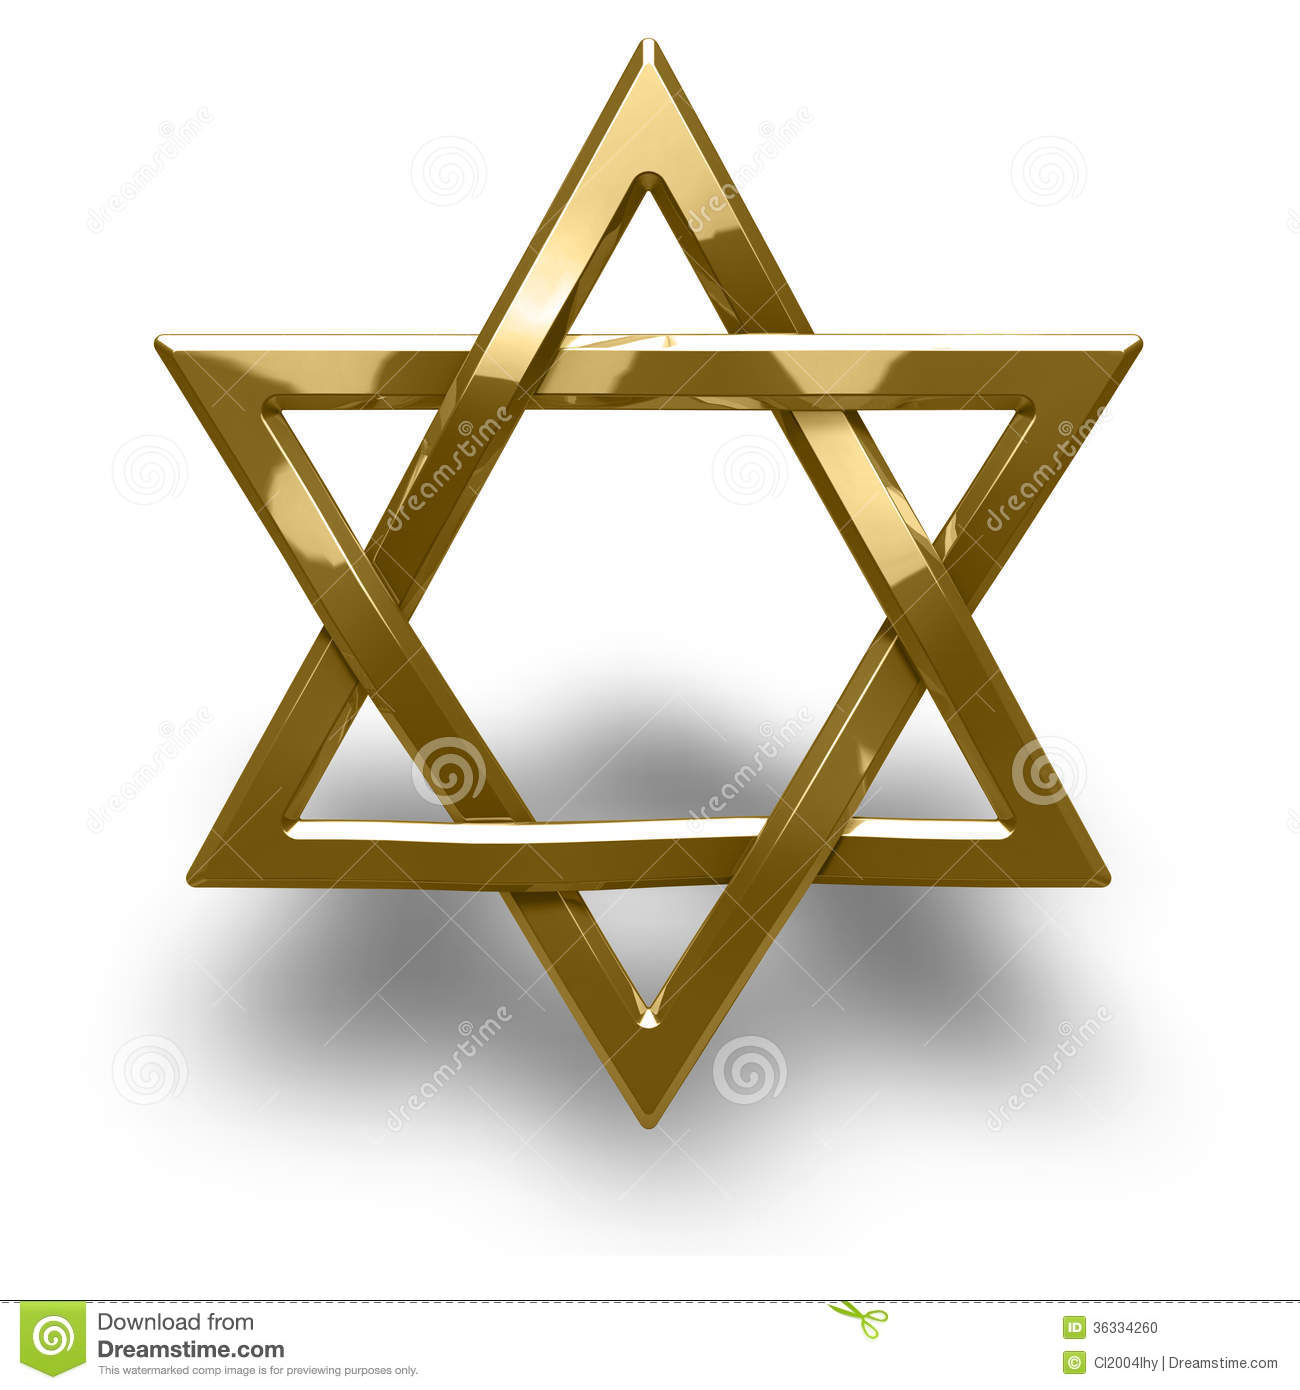 Judaism religious symbol star of david stock illustration judaism religious symbol star of david black israel biocorpaavc Choice Image